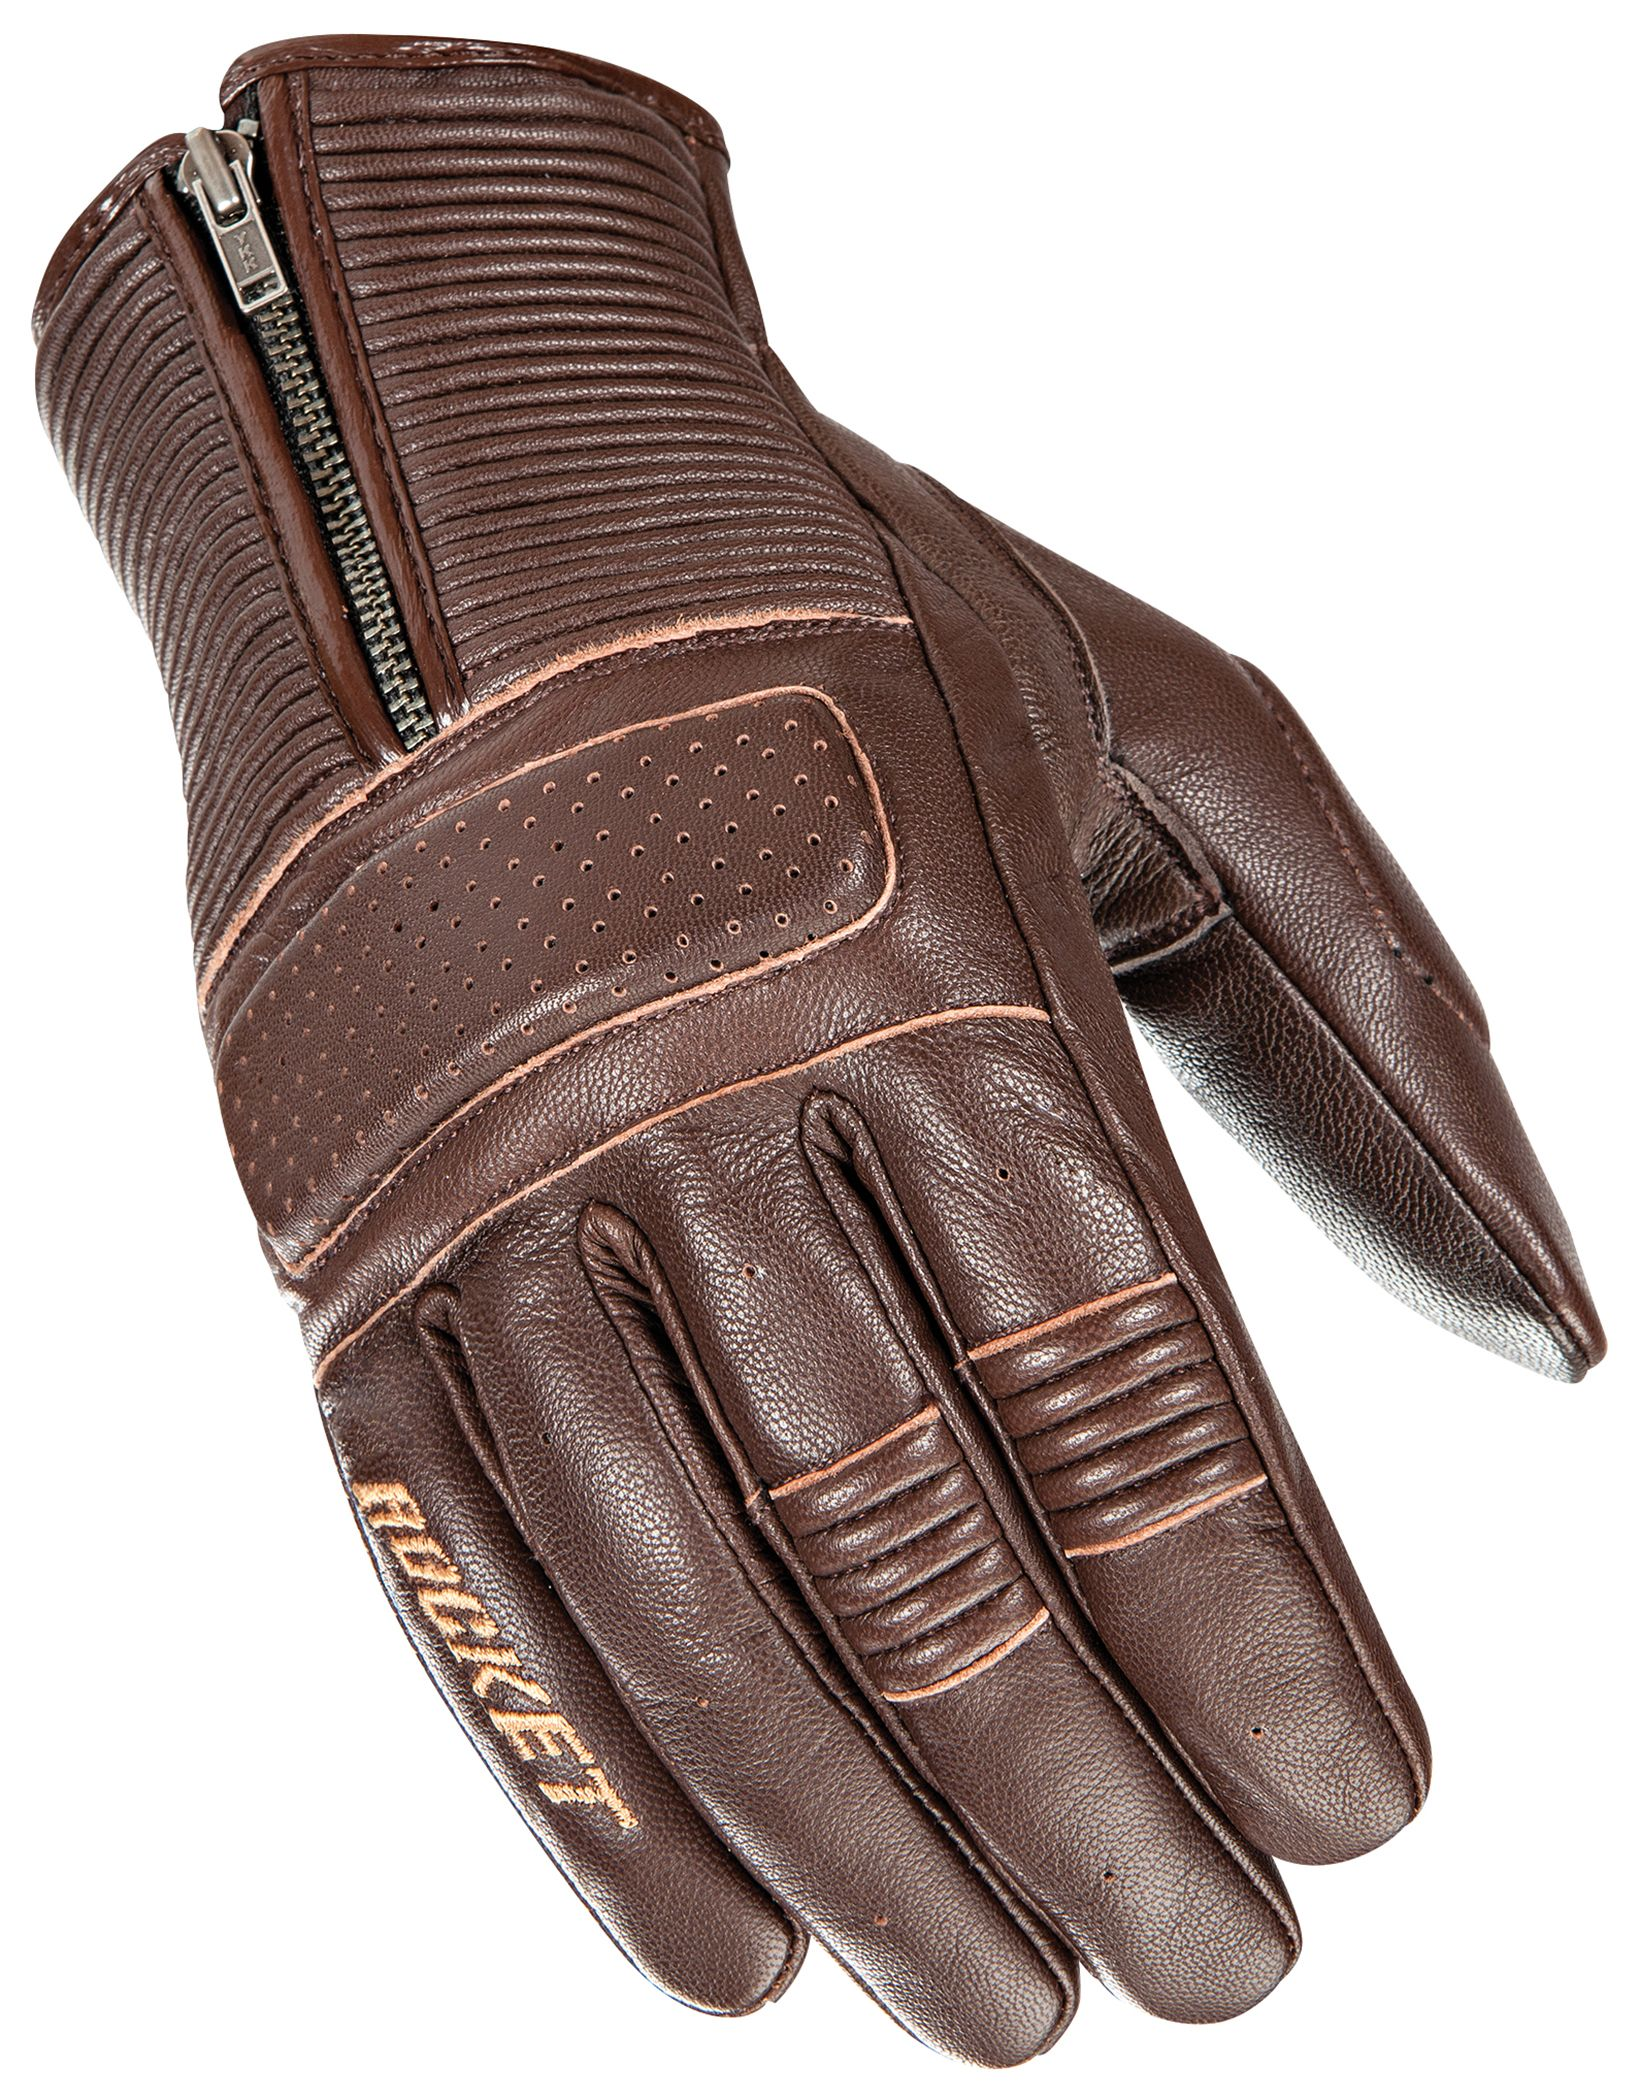 Triumph motorcycle leather gloves - Joe Rocket Cafe Racer Men S Brown Leather Gloves